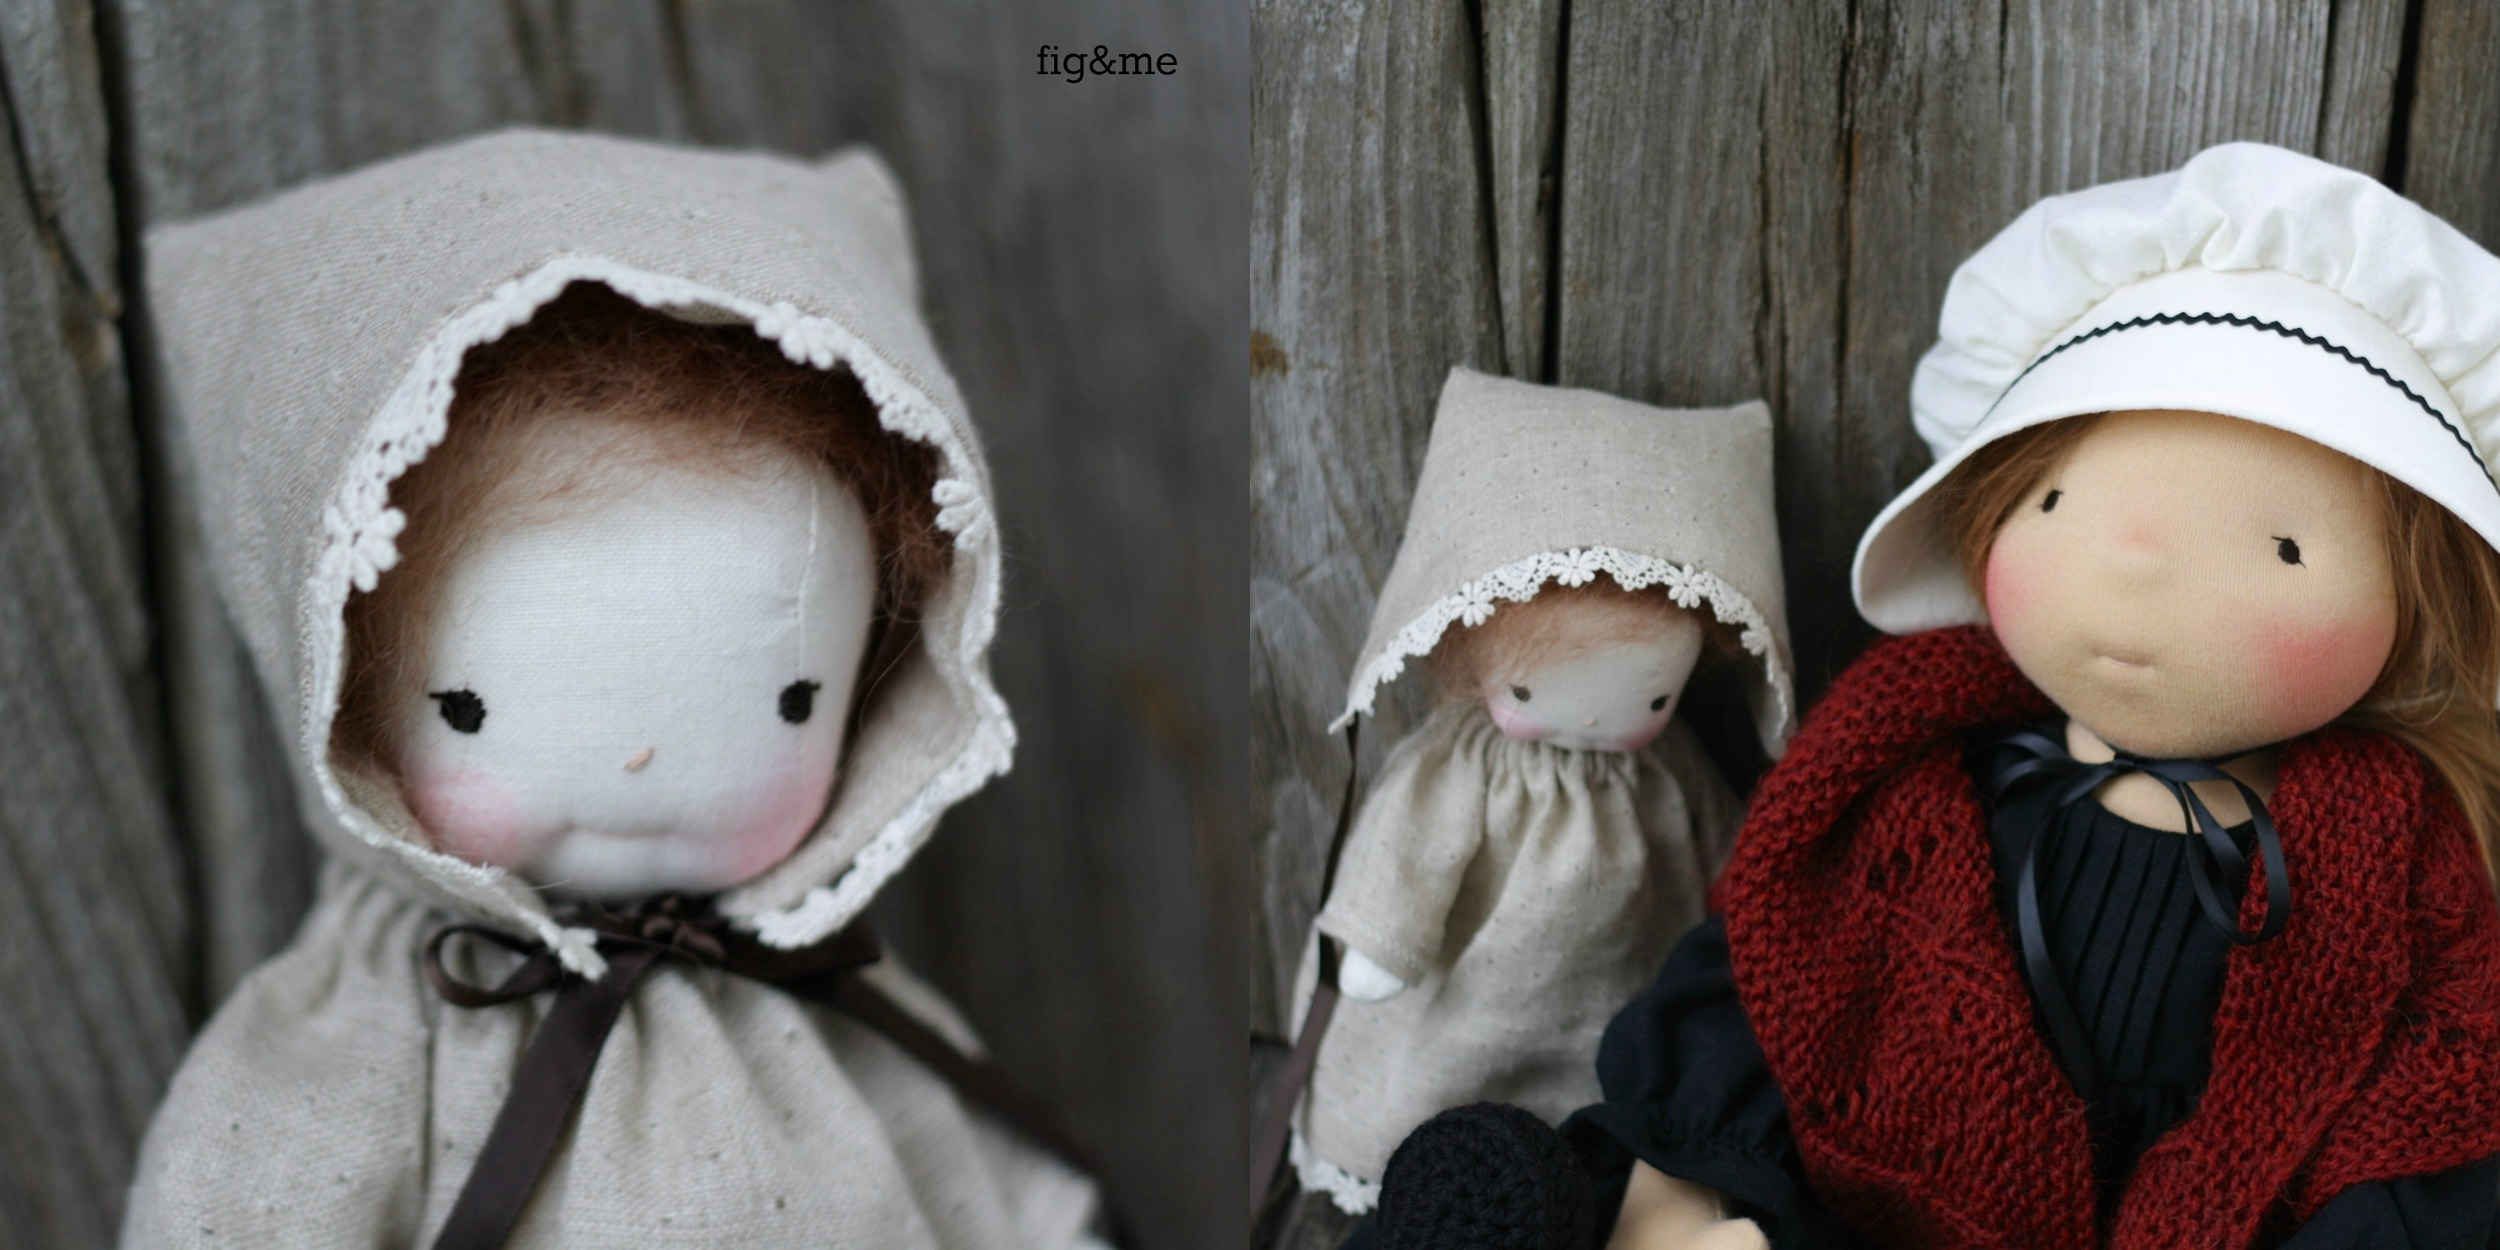 Patootie is the most loved doll, by Fig and me.